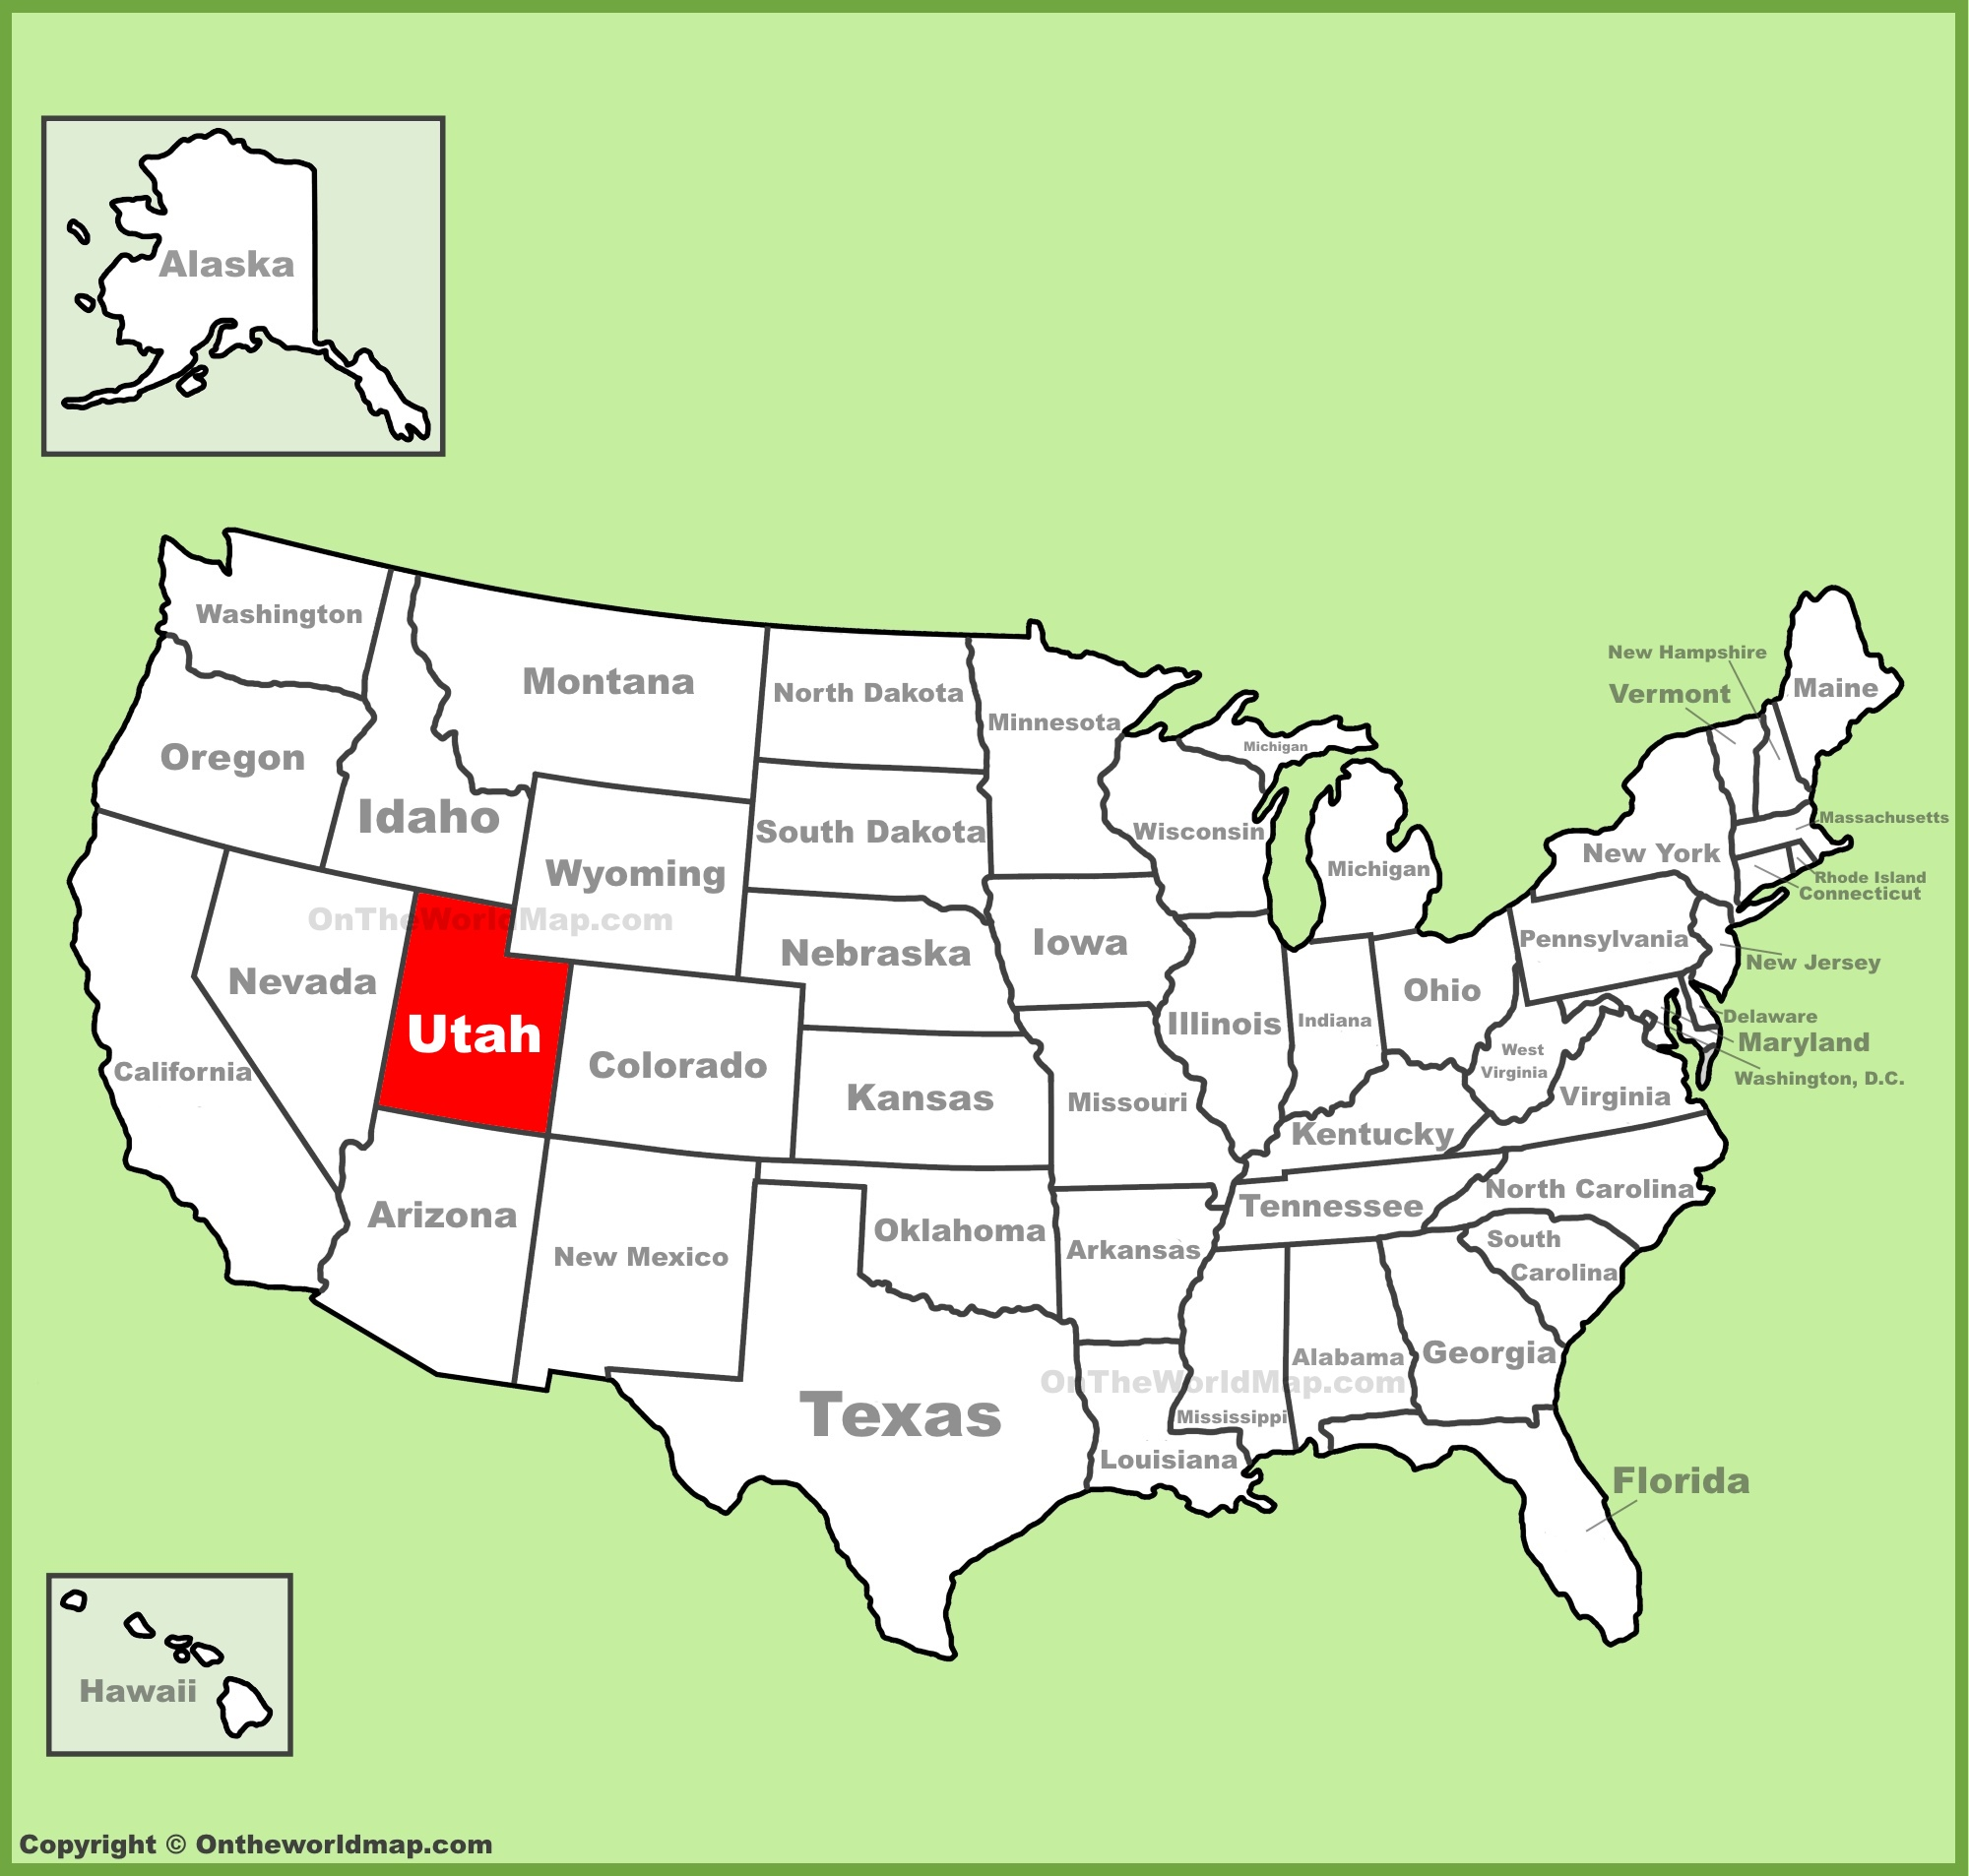 Utah Usa Map Utah location on the U.S. Map